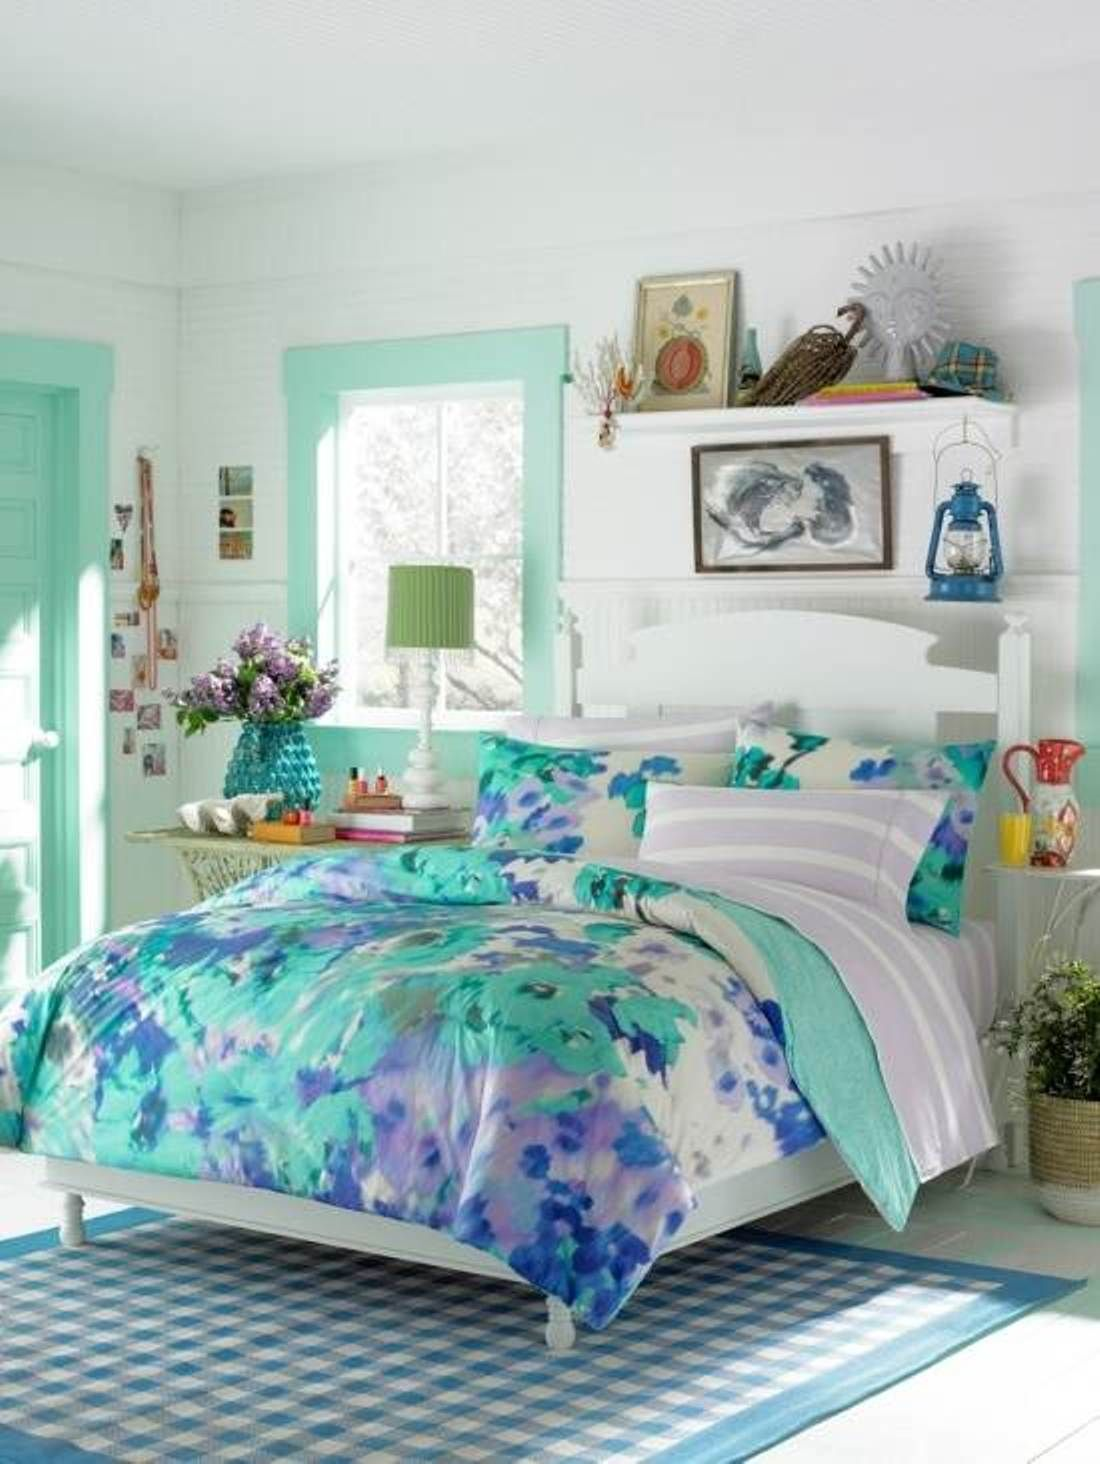 Bedroom colors blue and green - White Wall Ceiling Color Teen Bedroom Themes With Soft Blue Leaf Motive Bedding And White Wood Headboard On Soft Blue White Mosaic Style Rug Area Also Green